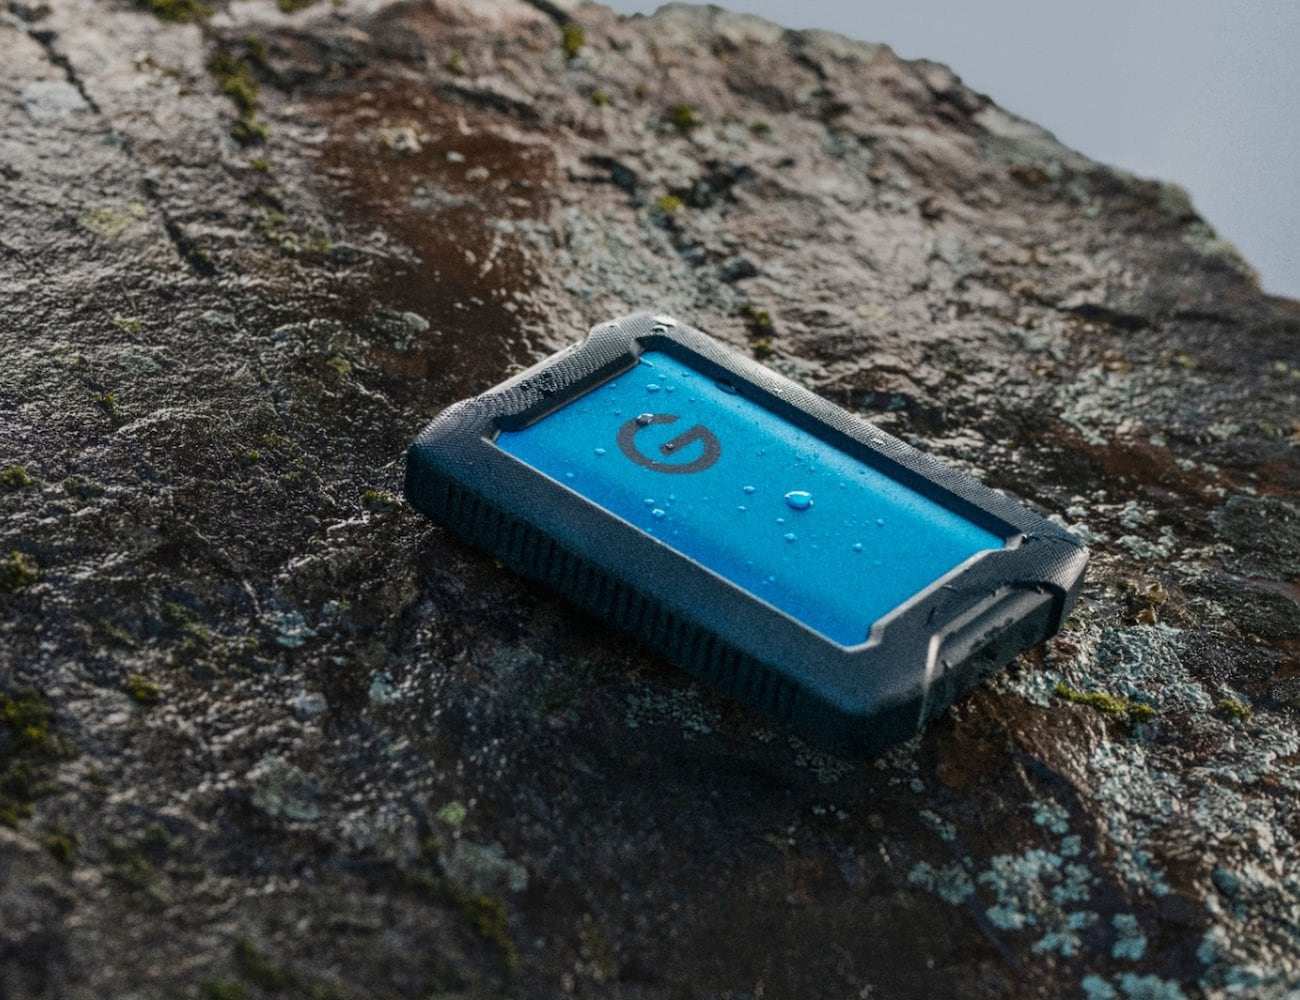 Western Digital G-Technology ArmorATD Rugged Portable Hard Drive handles your adventurous lifestyle